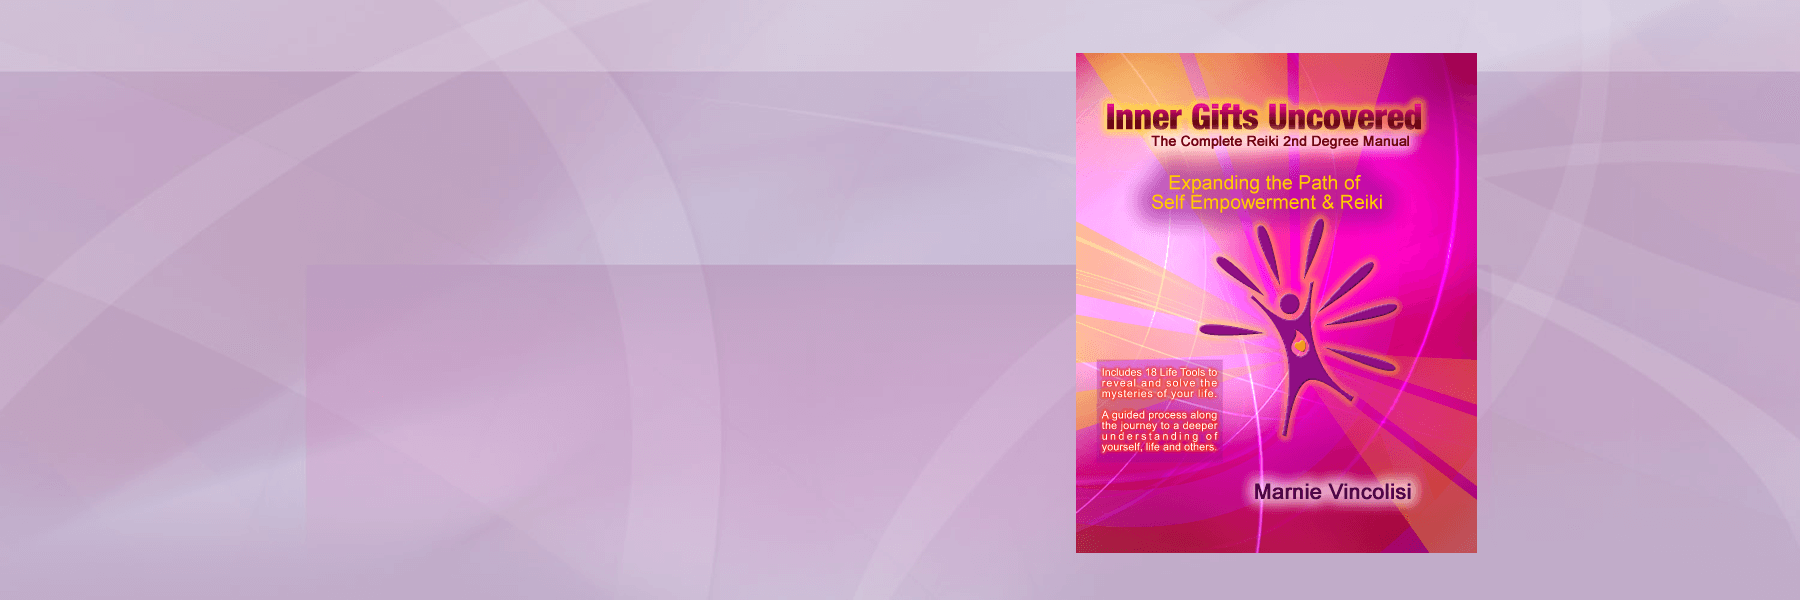 Inner Gifts Uncovered Book - Slider